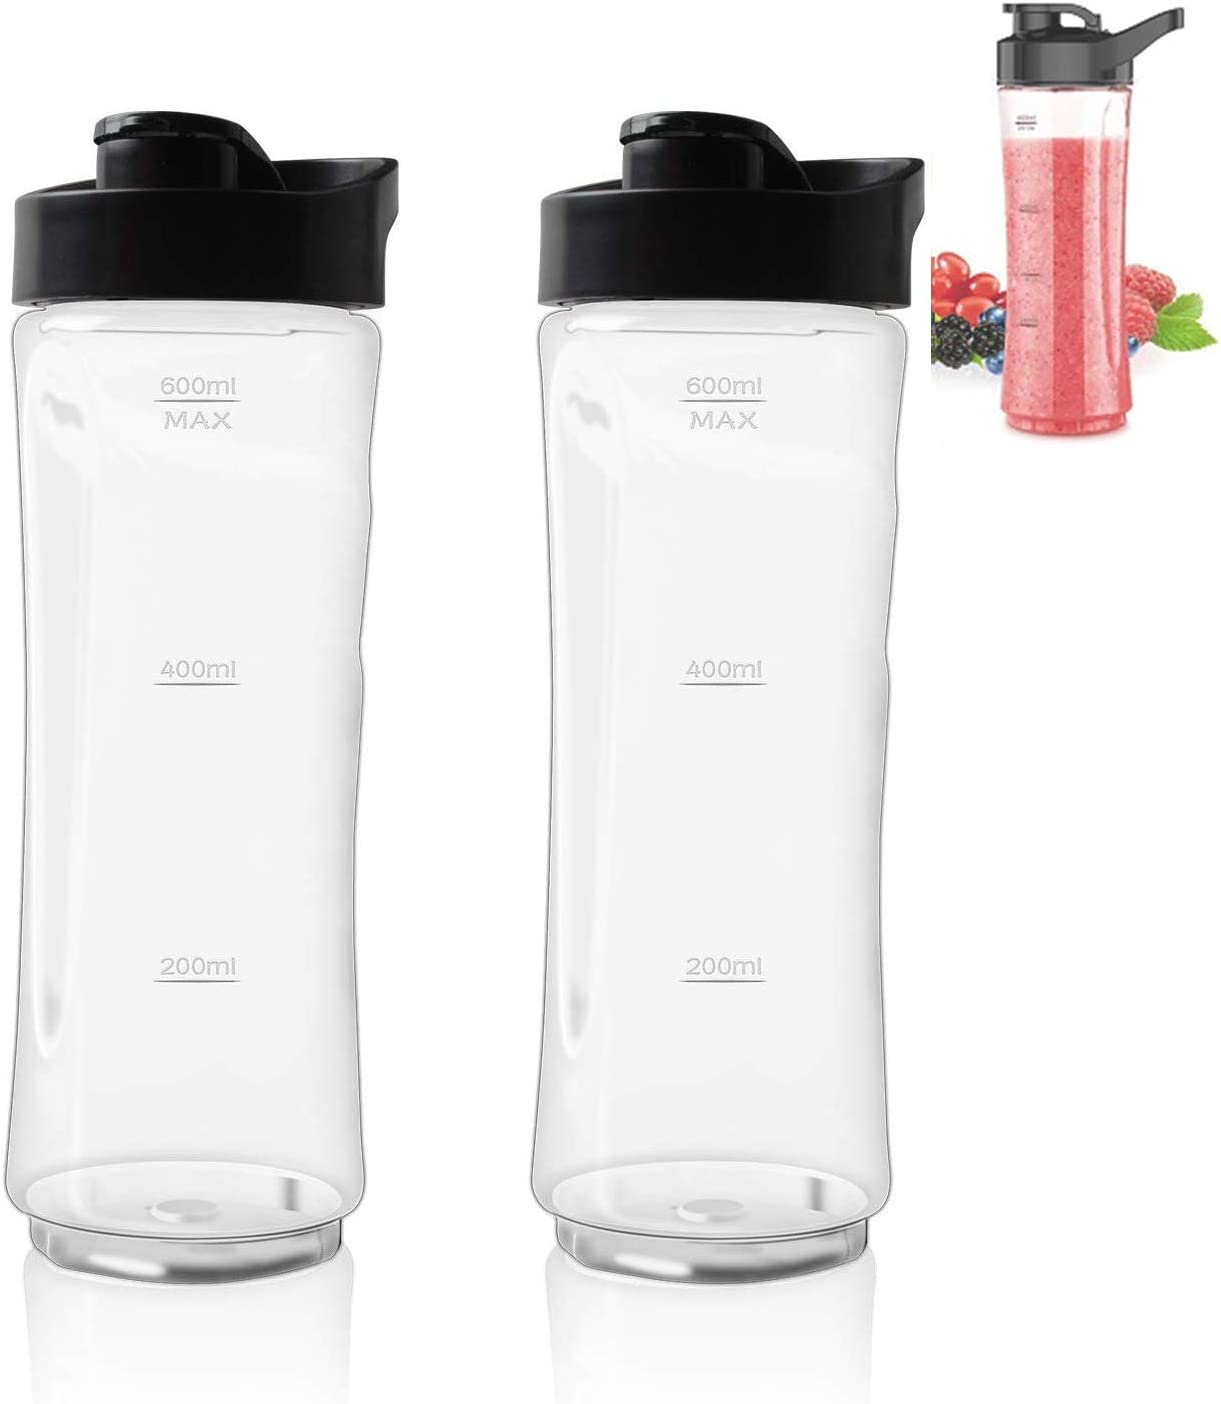 20 OZ Sport Bottle with Lid by Podoy Replace for Oster MyBlend Blender BLSTPB and BLSTP2 Blender